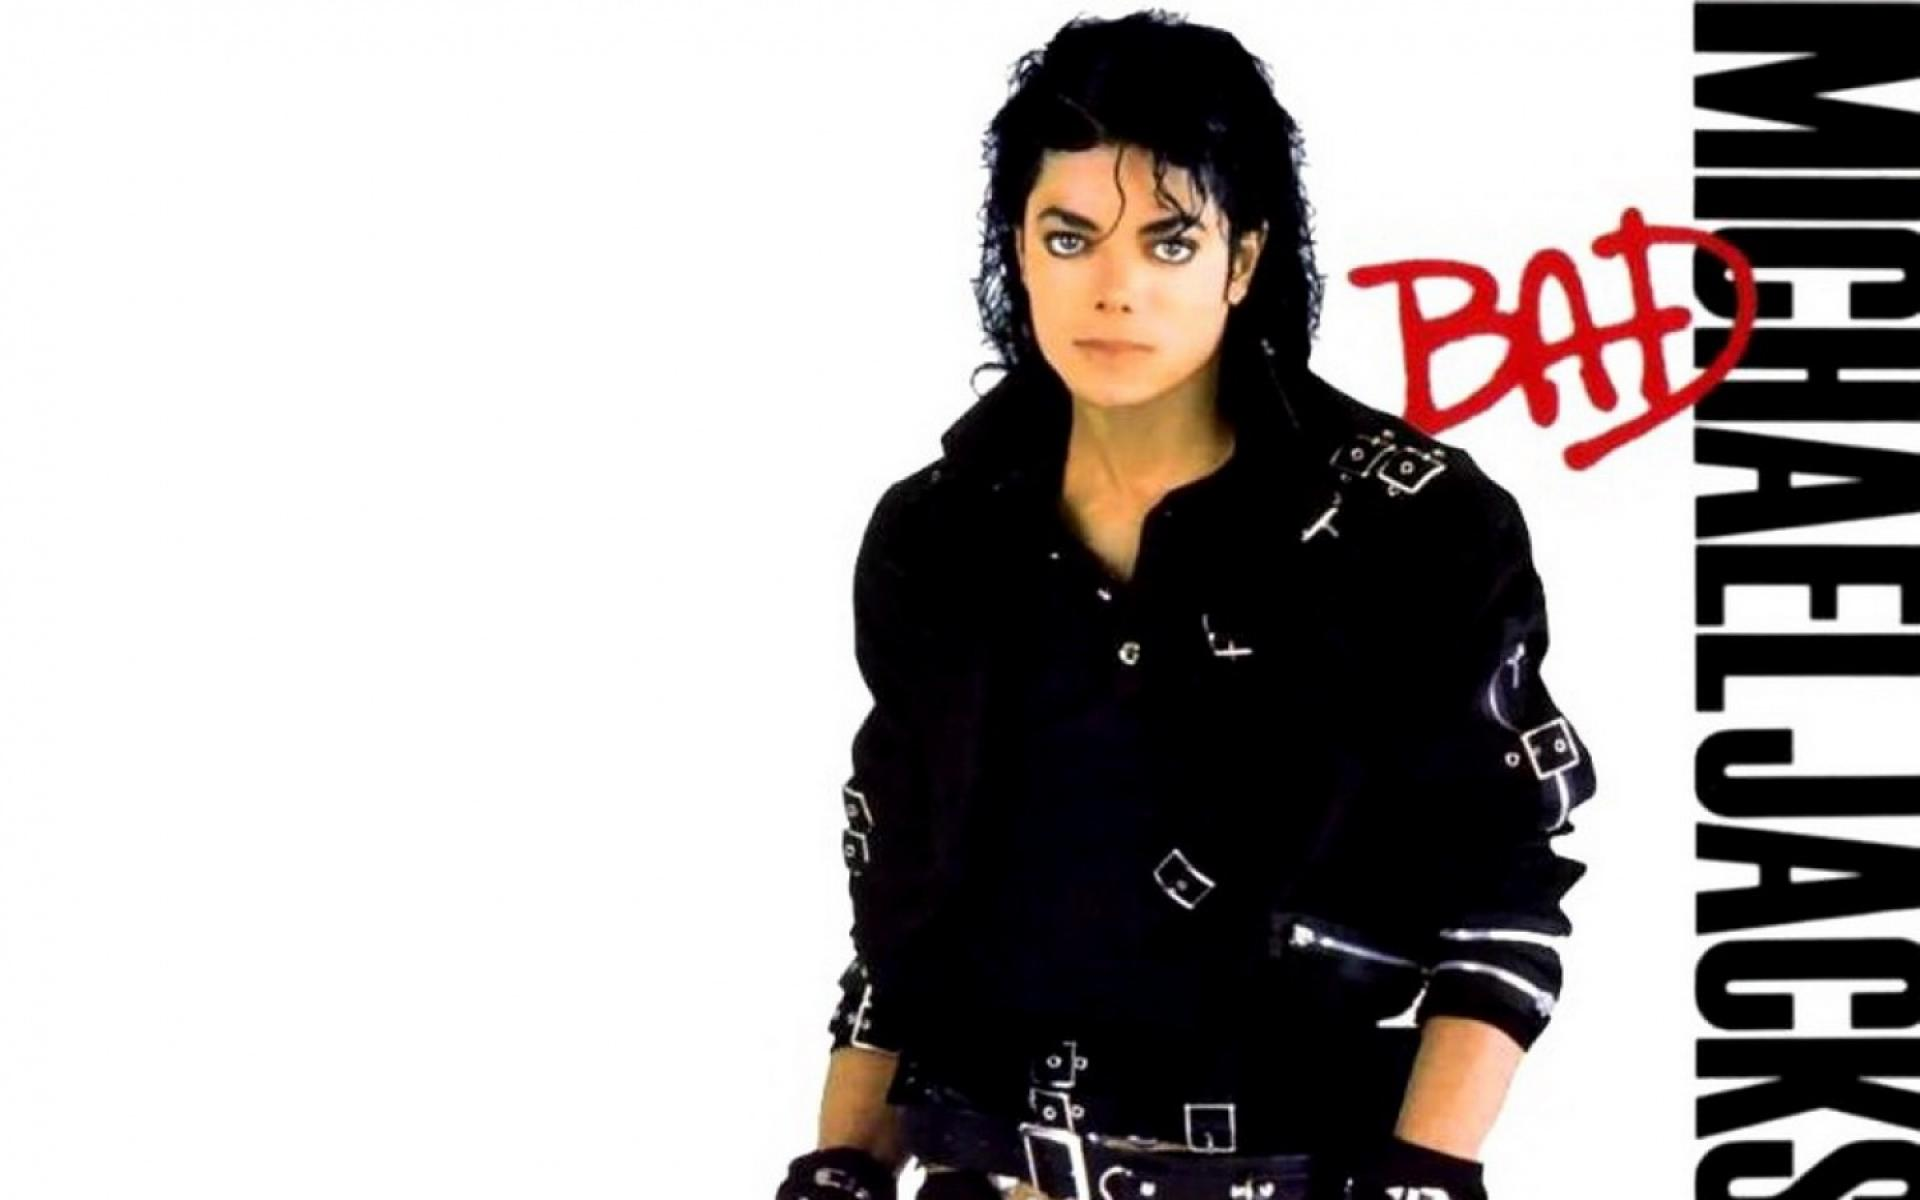 Michael Jackson Wallpaper Download